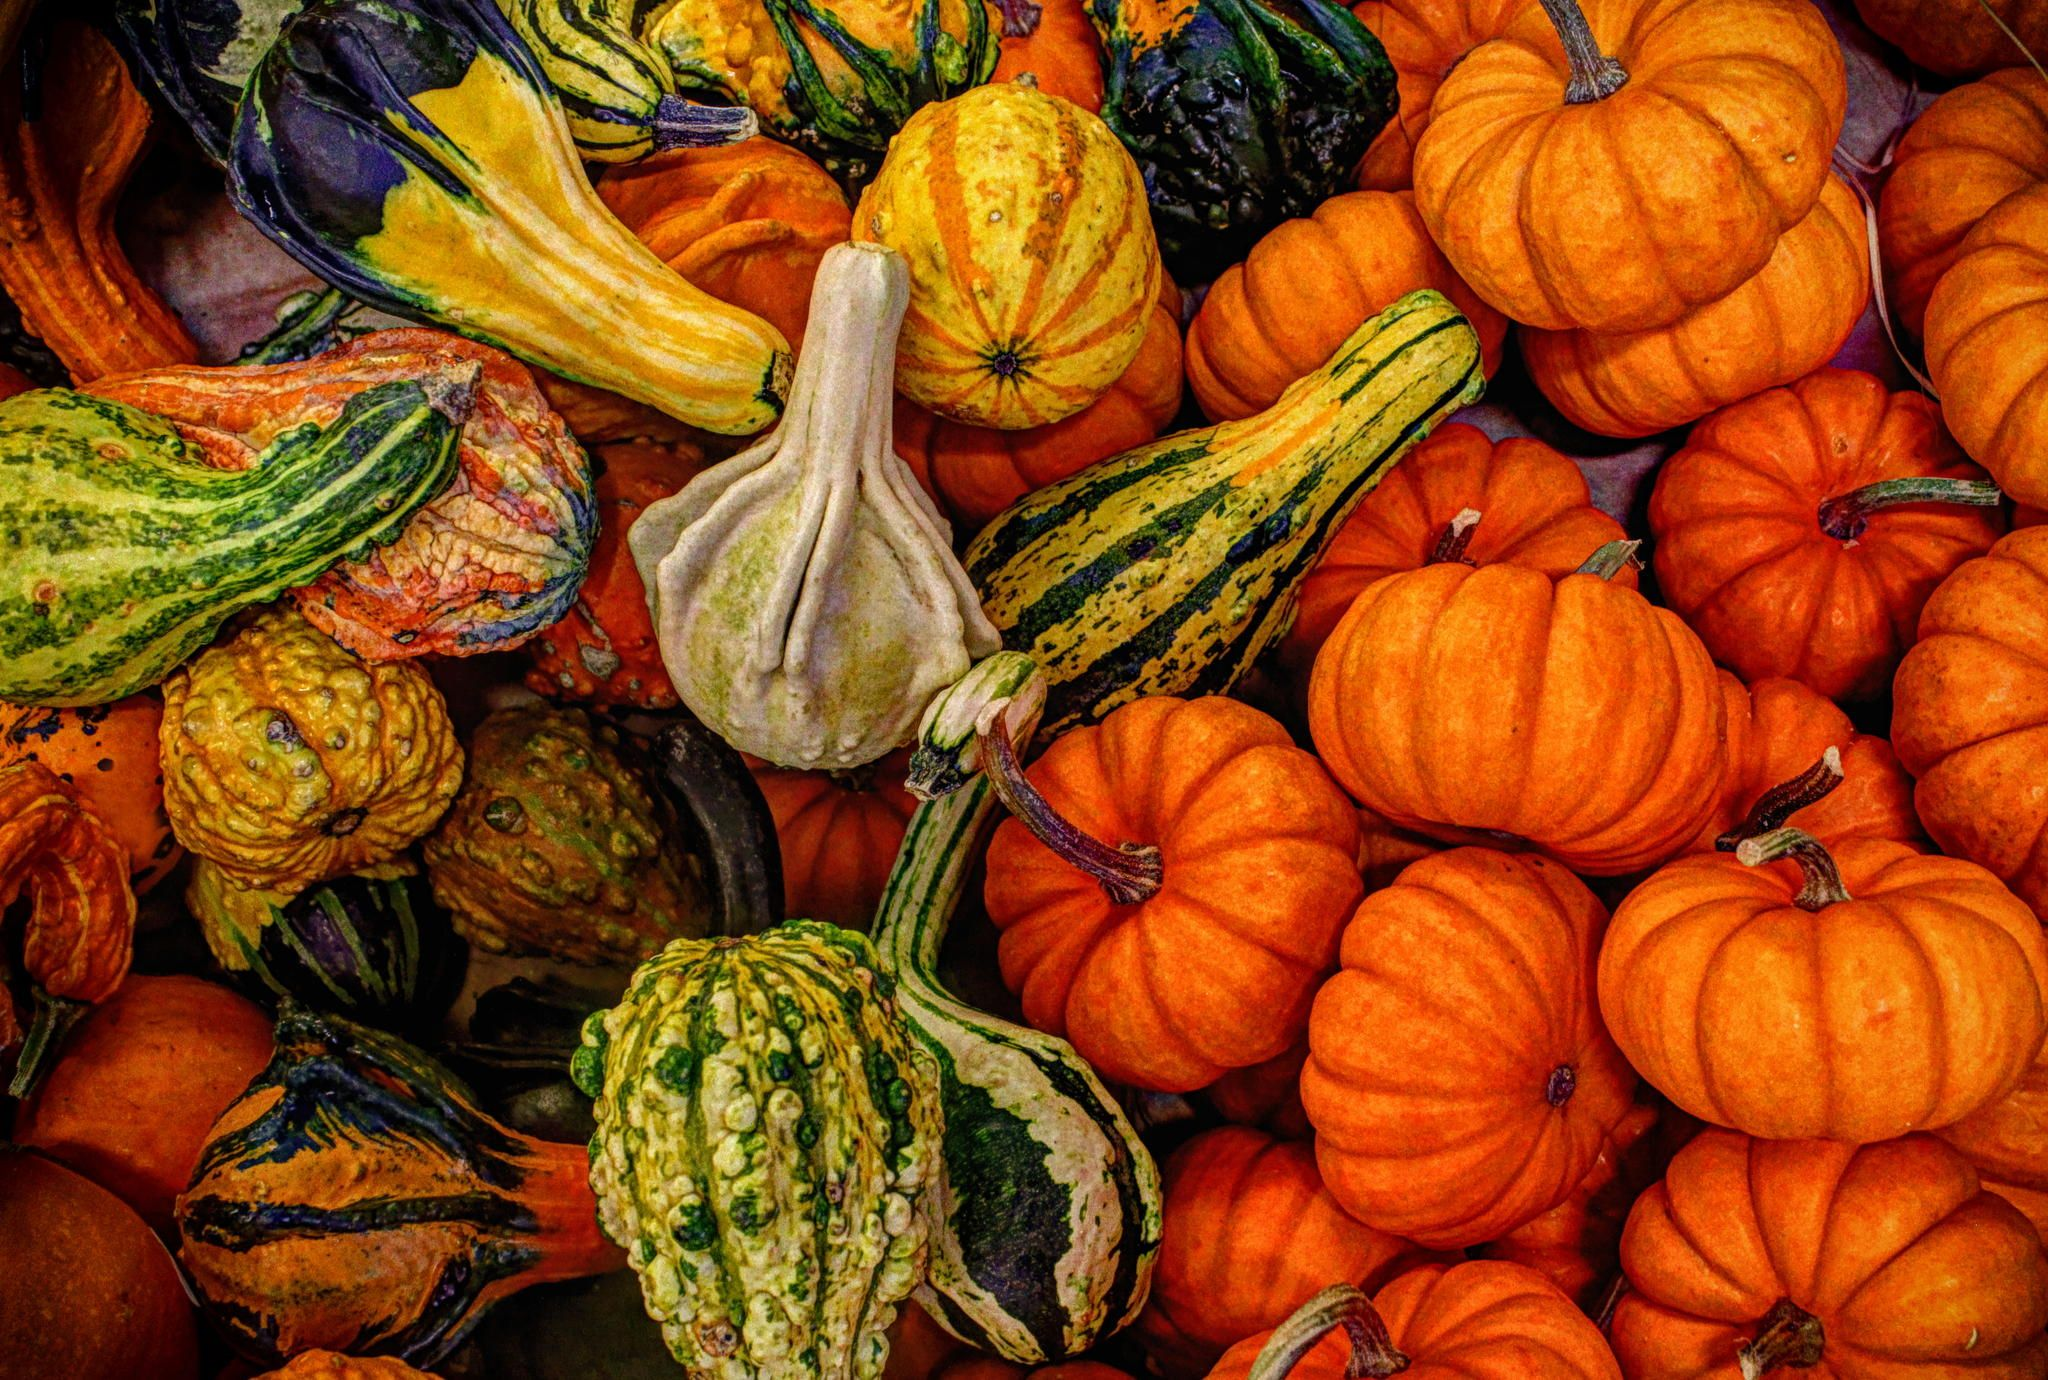 Gourds in the grocery store - My wife thought I should help with the shopping.